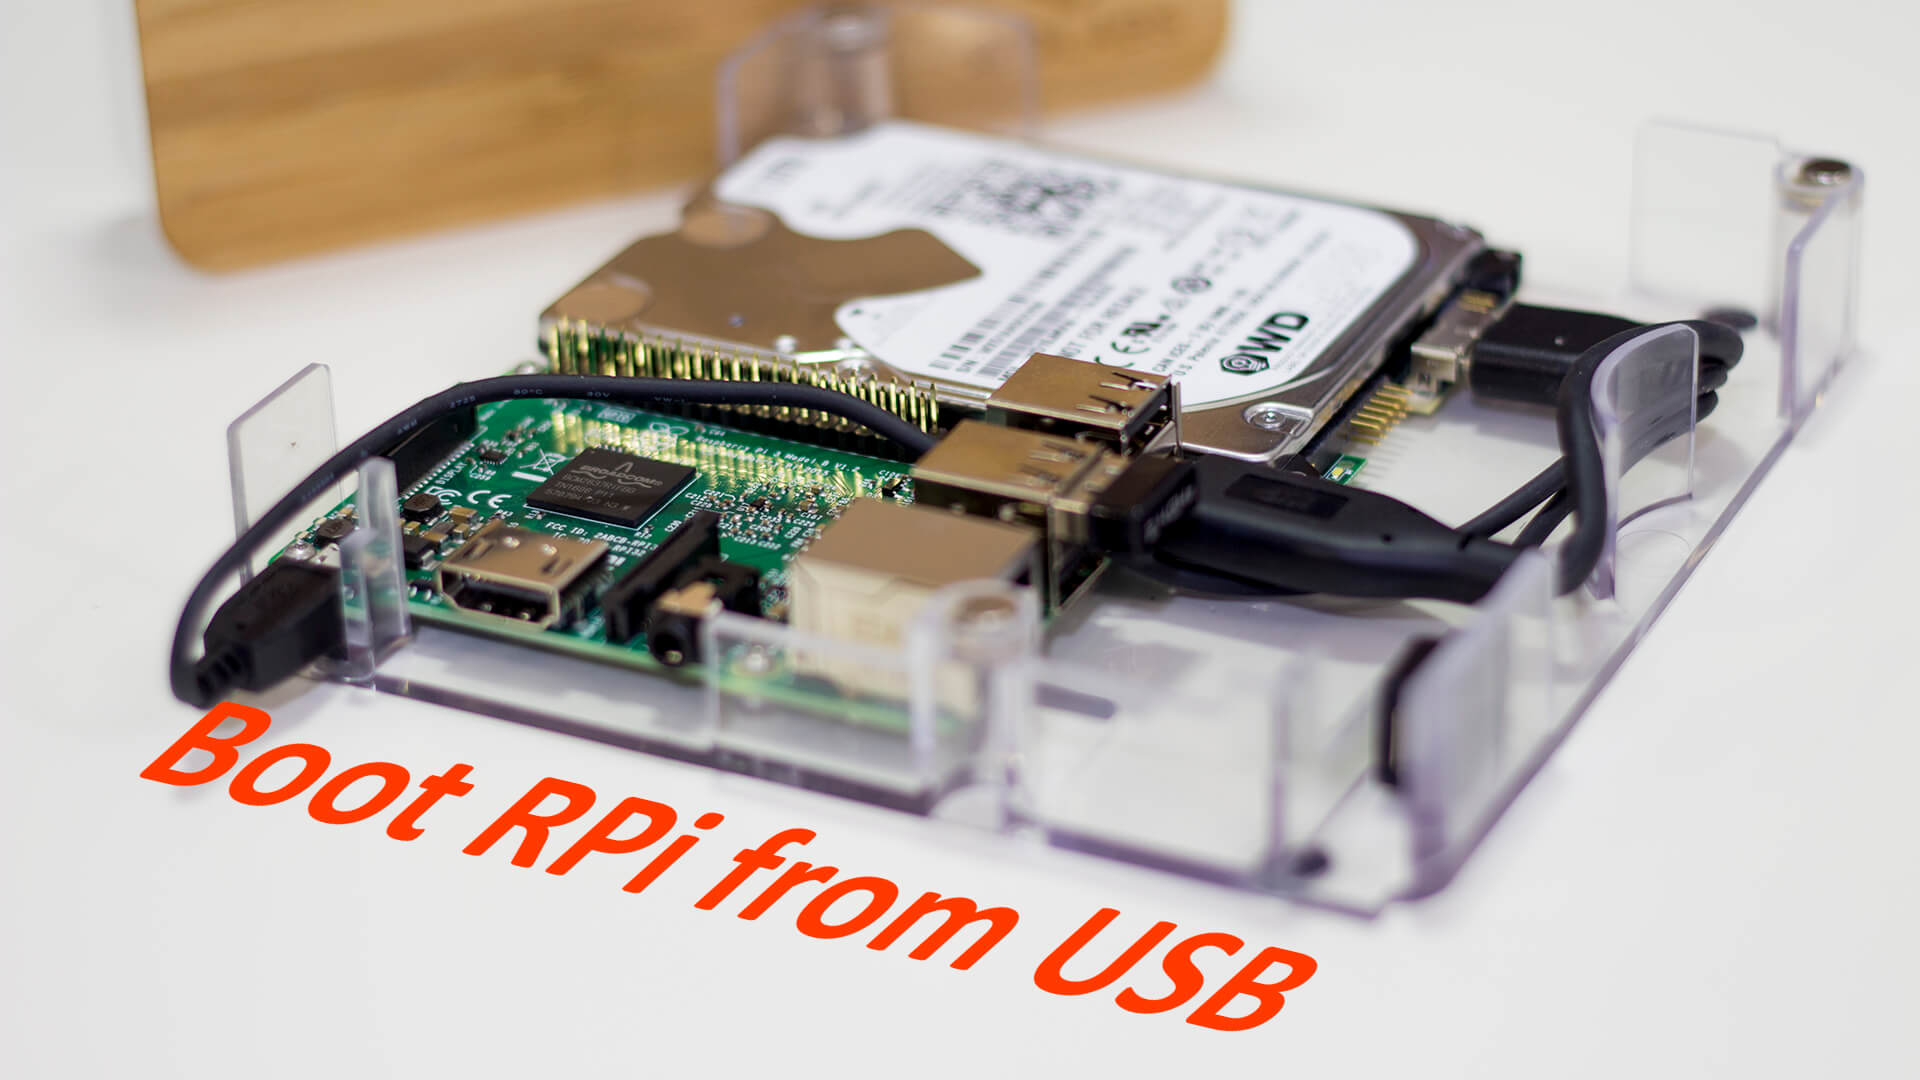 Raspberry Pi Usb Boot